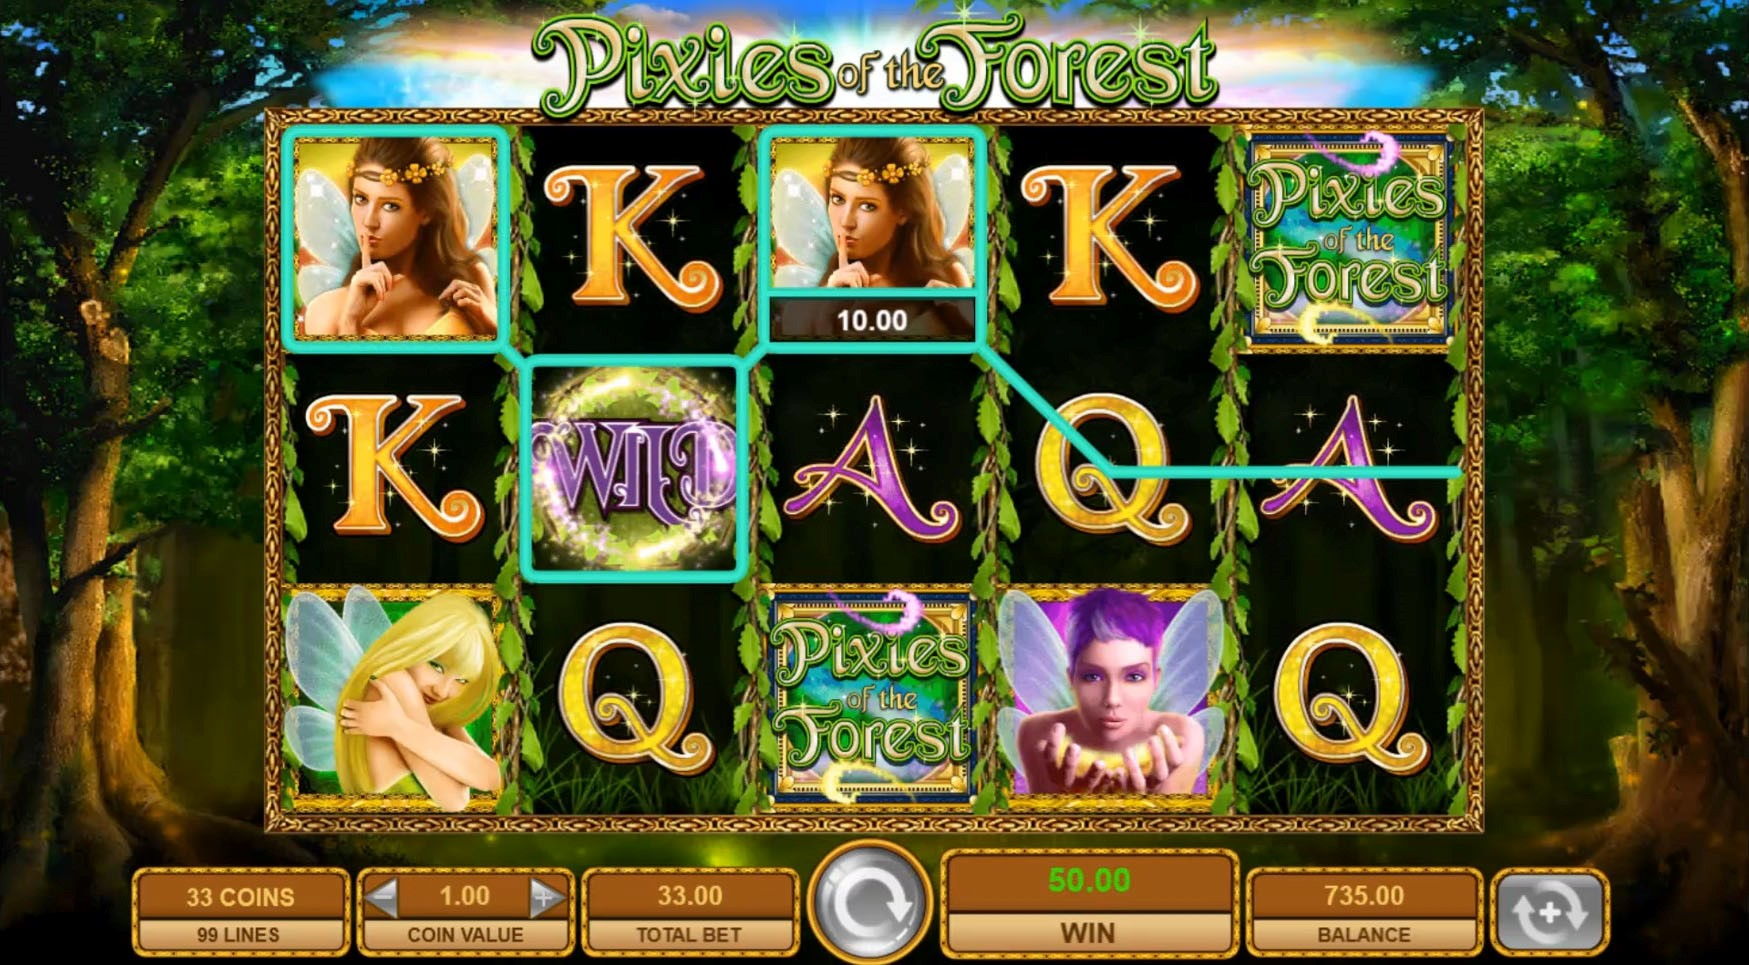 A base game win involving a Wild symbol during the Pixies of the Forest slot online